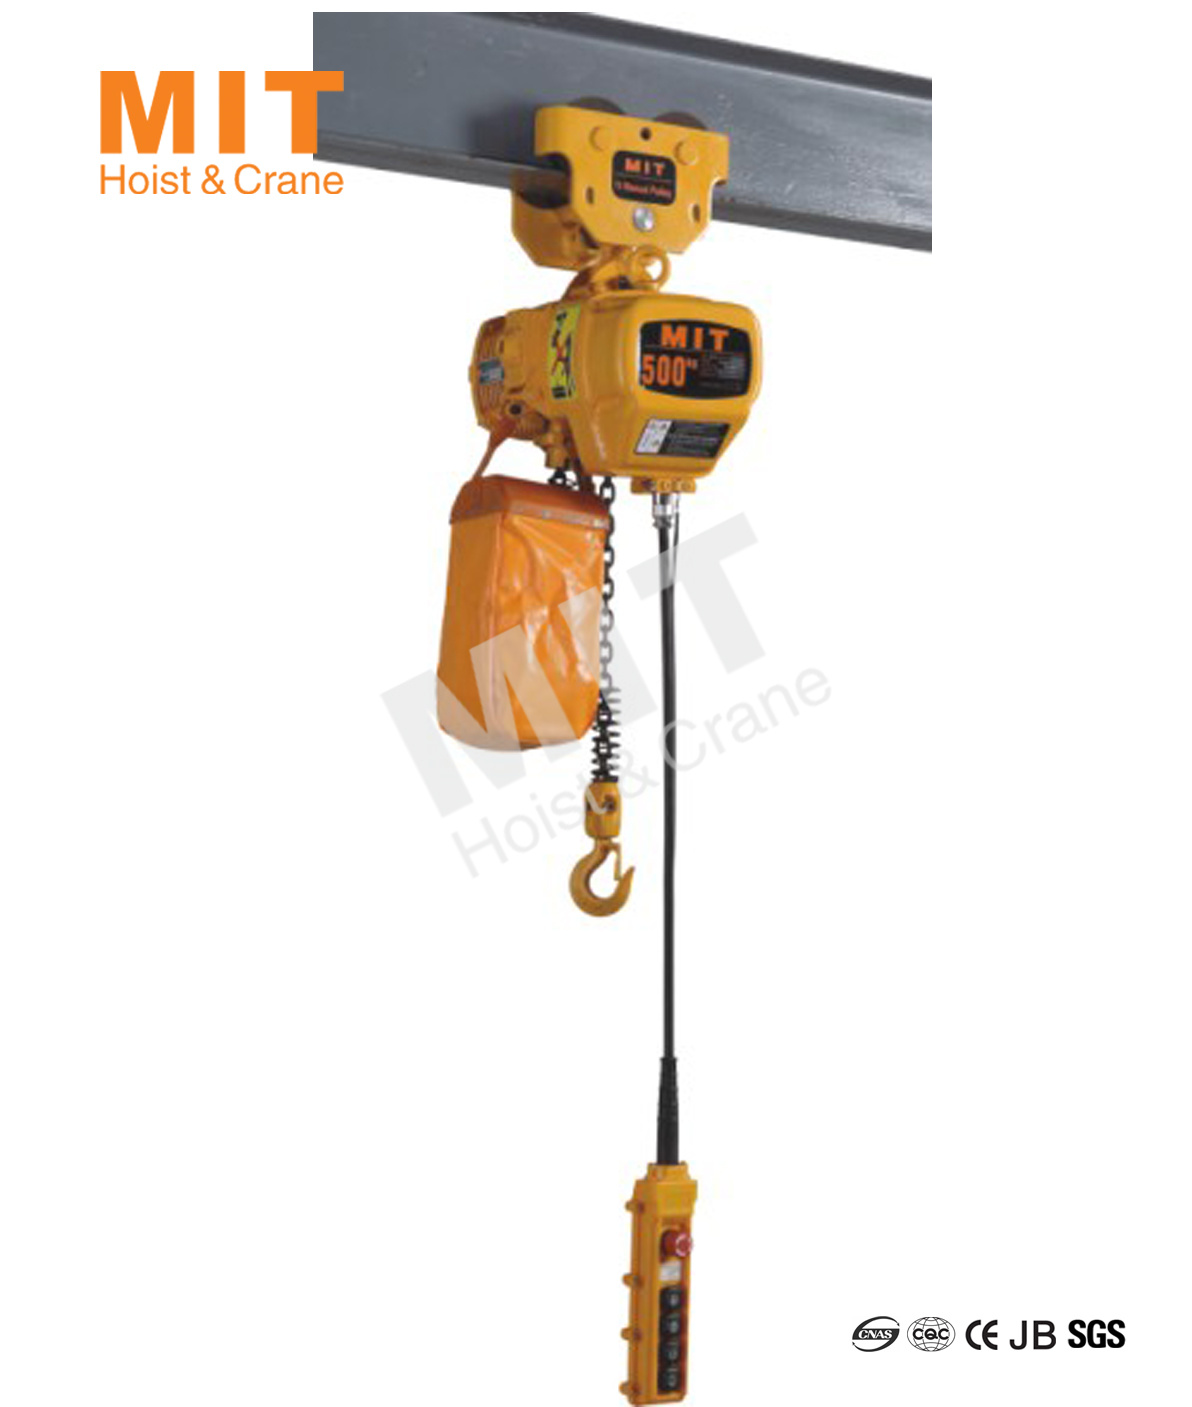 China Mit Electric Chain Hoist 0 5t With Manual Trolley